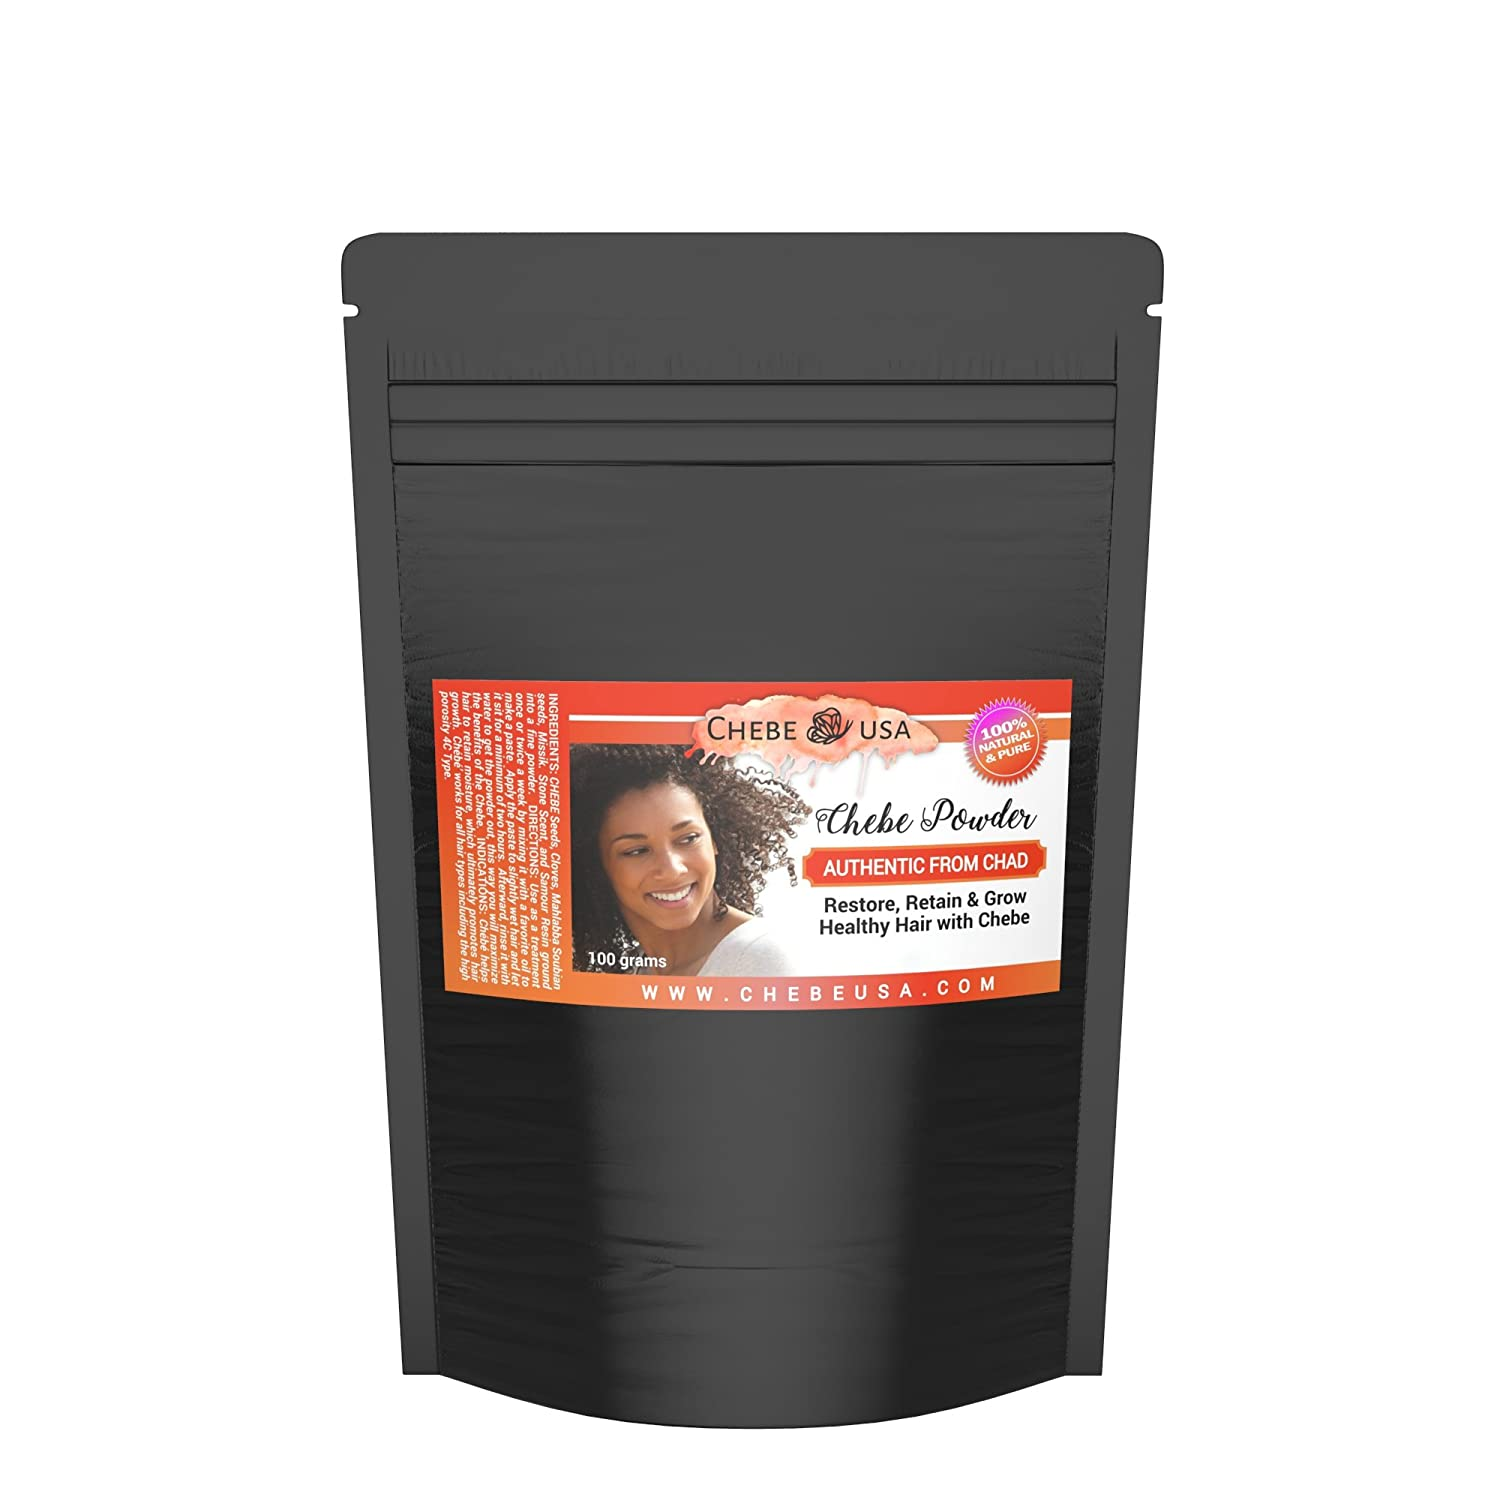 Uhuru Naturals Chebe Powder Sourced Directly From Miss Sahel And The Ladies in Her Video. Miss Sahel Has Listed ChebeUSA As Her Vendor in USA - 100 grams